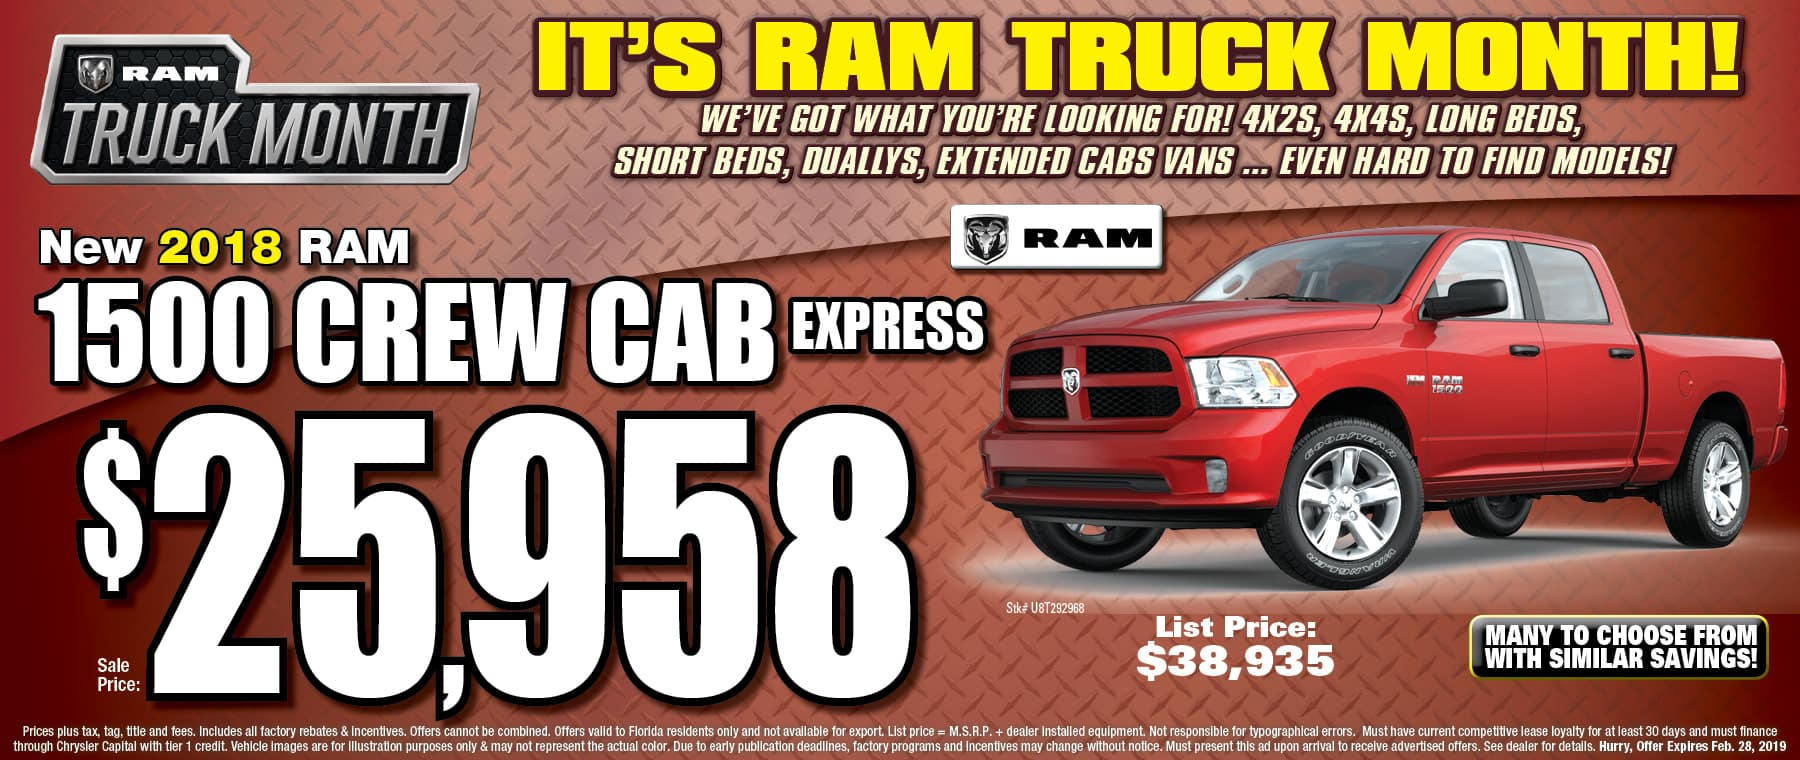 New 2018 RAM Crew Cab Express! - University Dodge RAM!